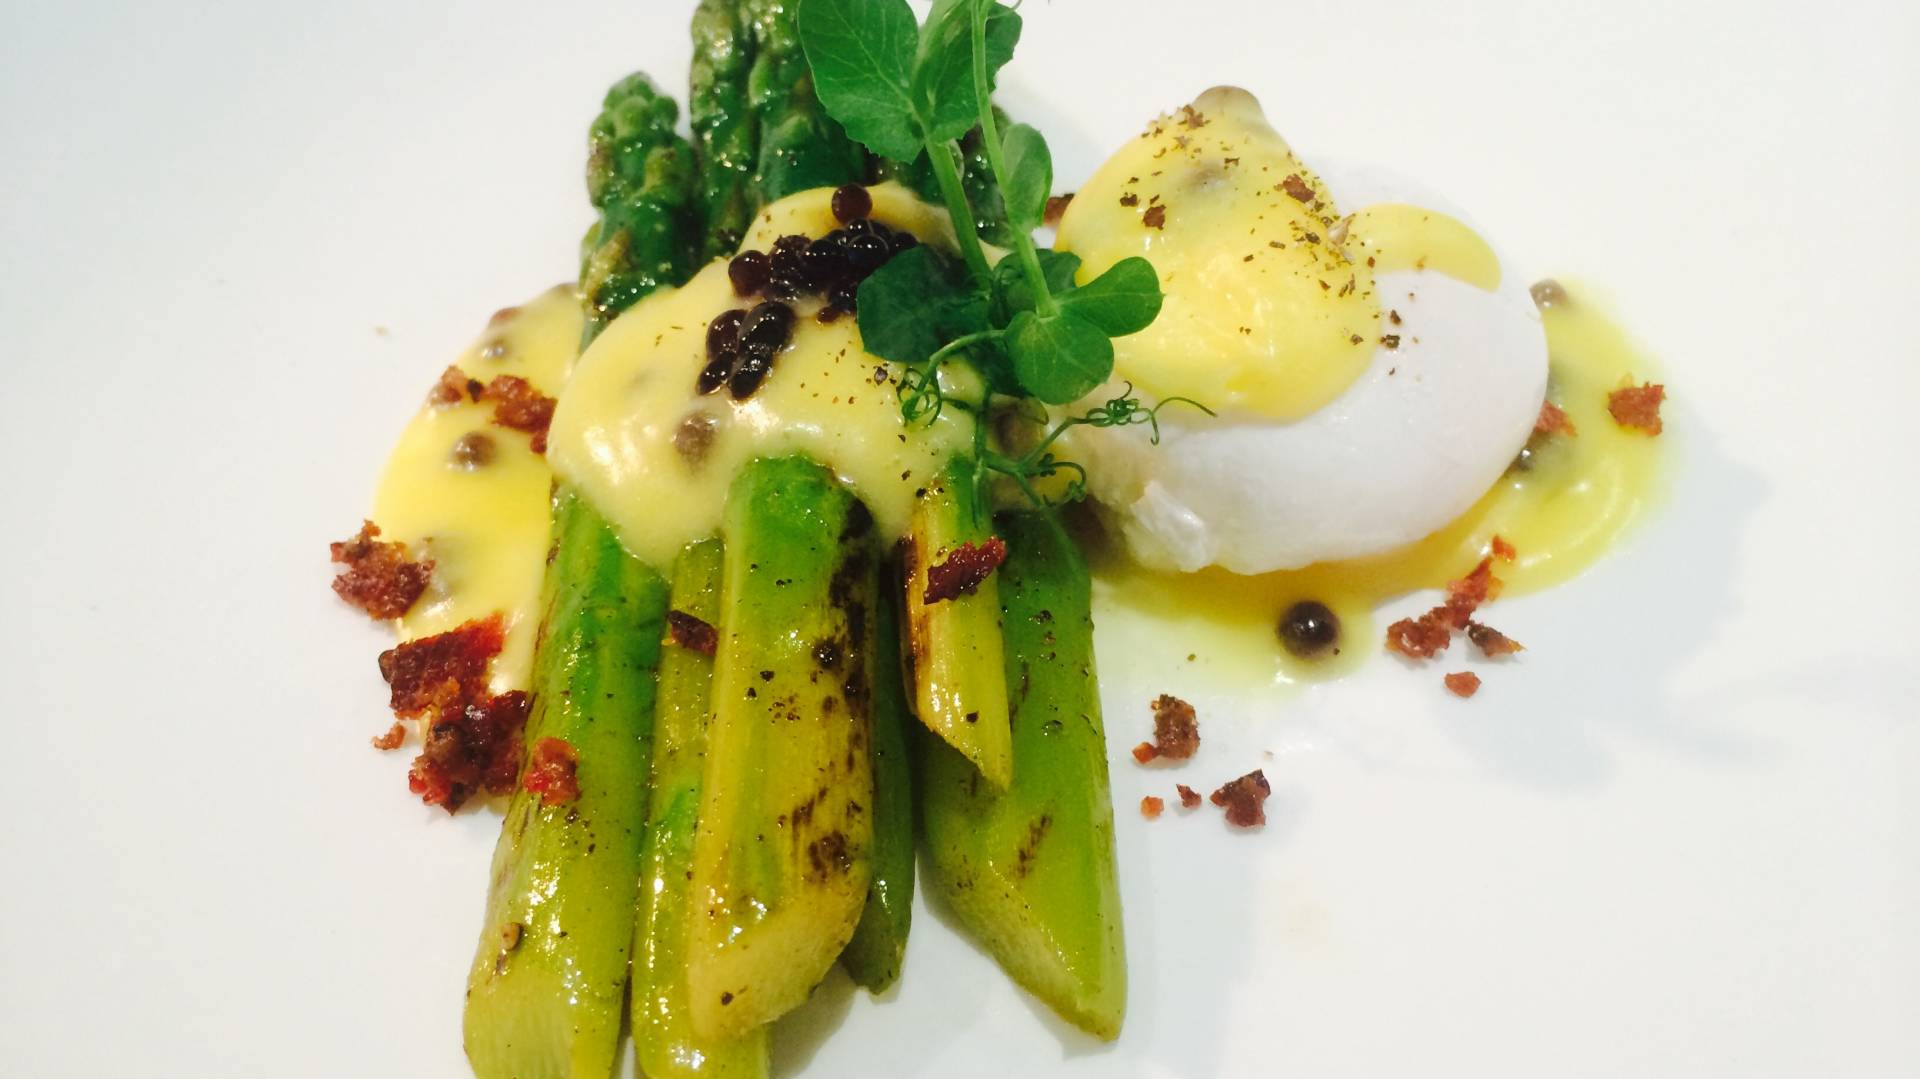 Grilled asparagus with poached egg and hollandaise